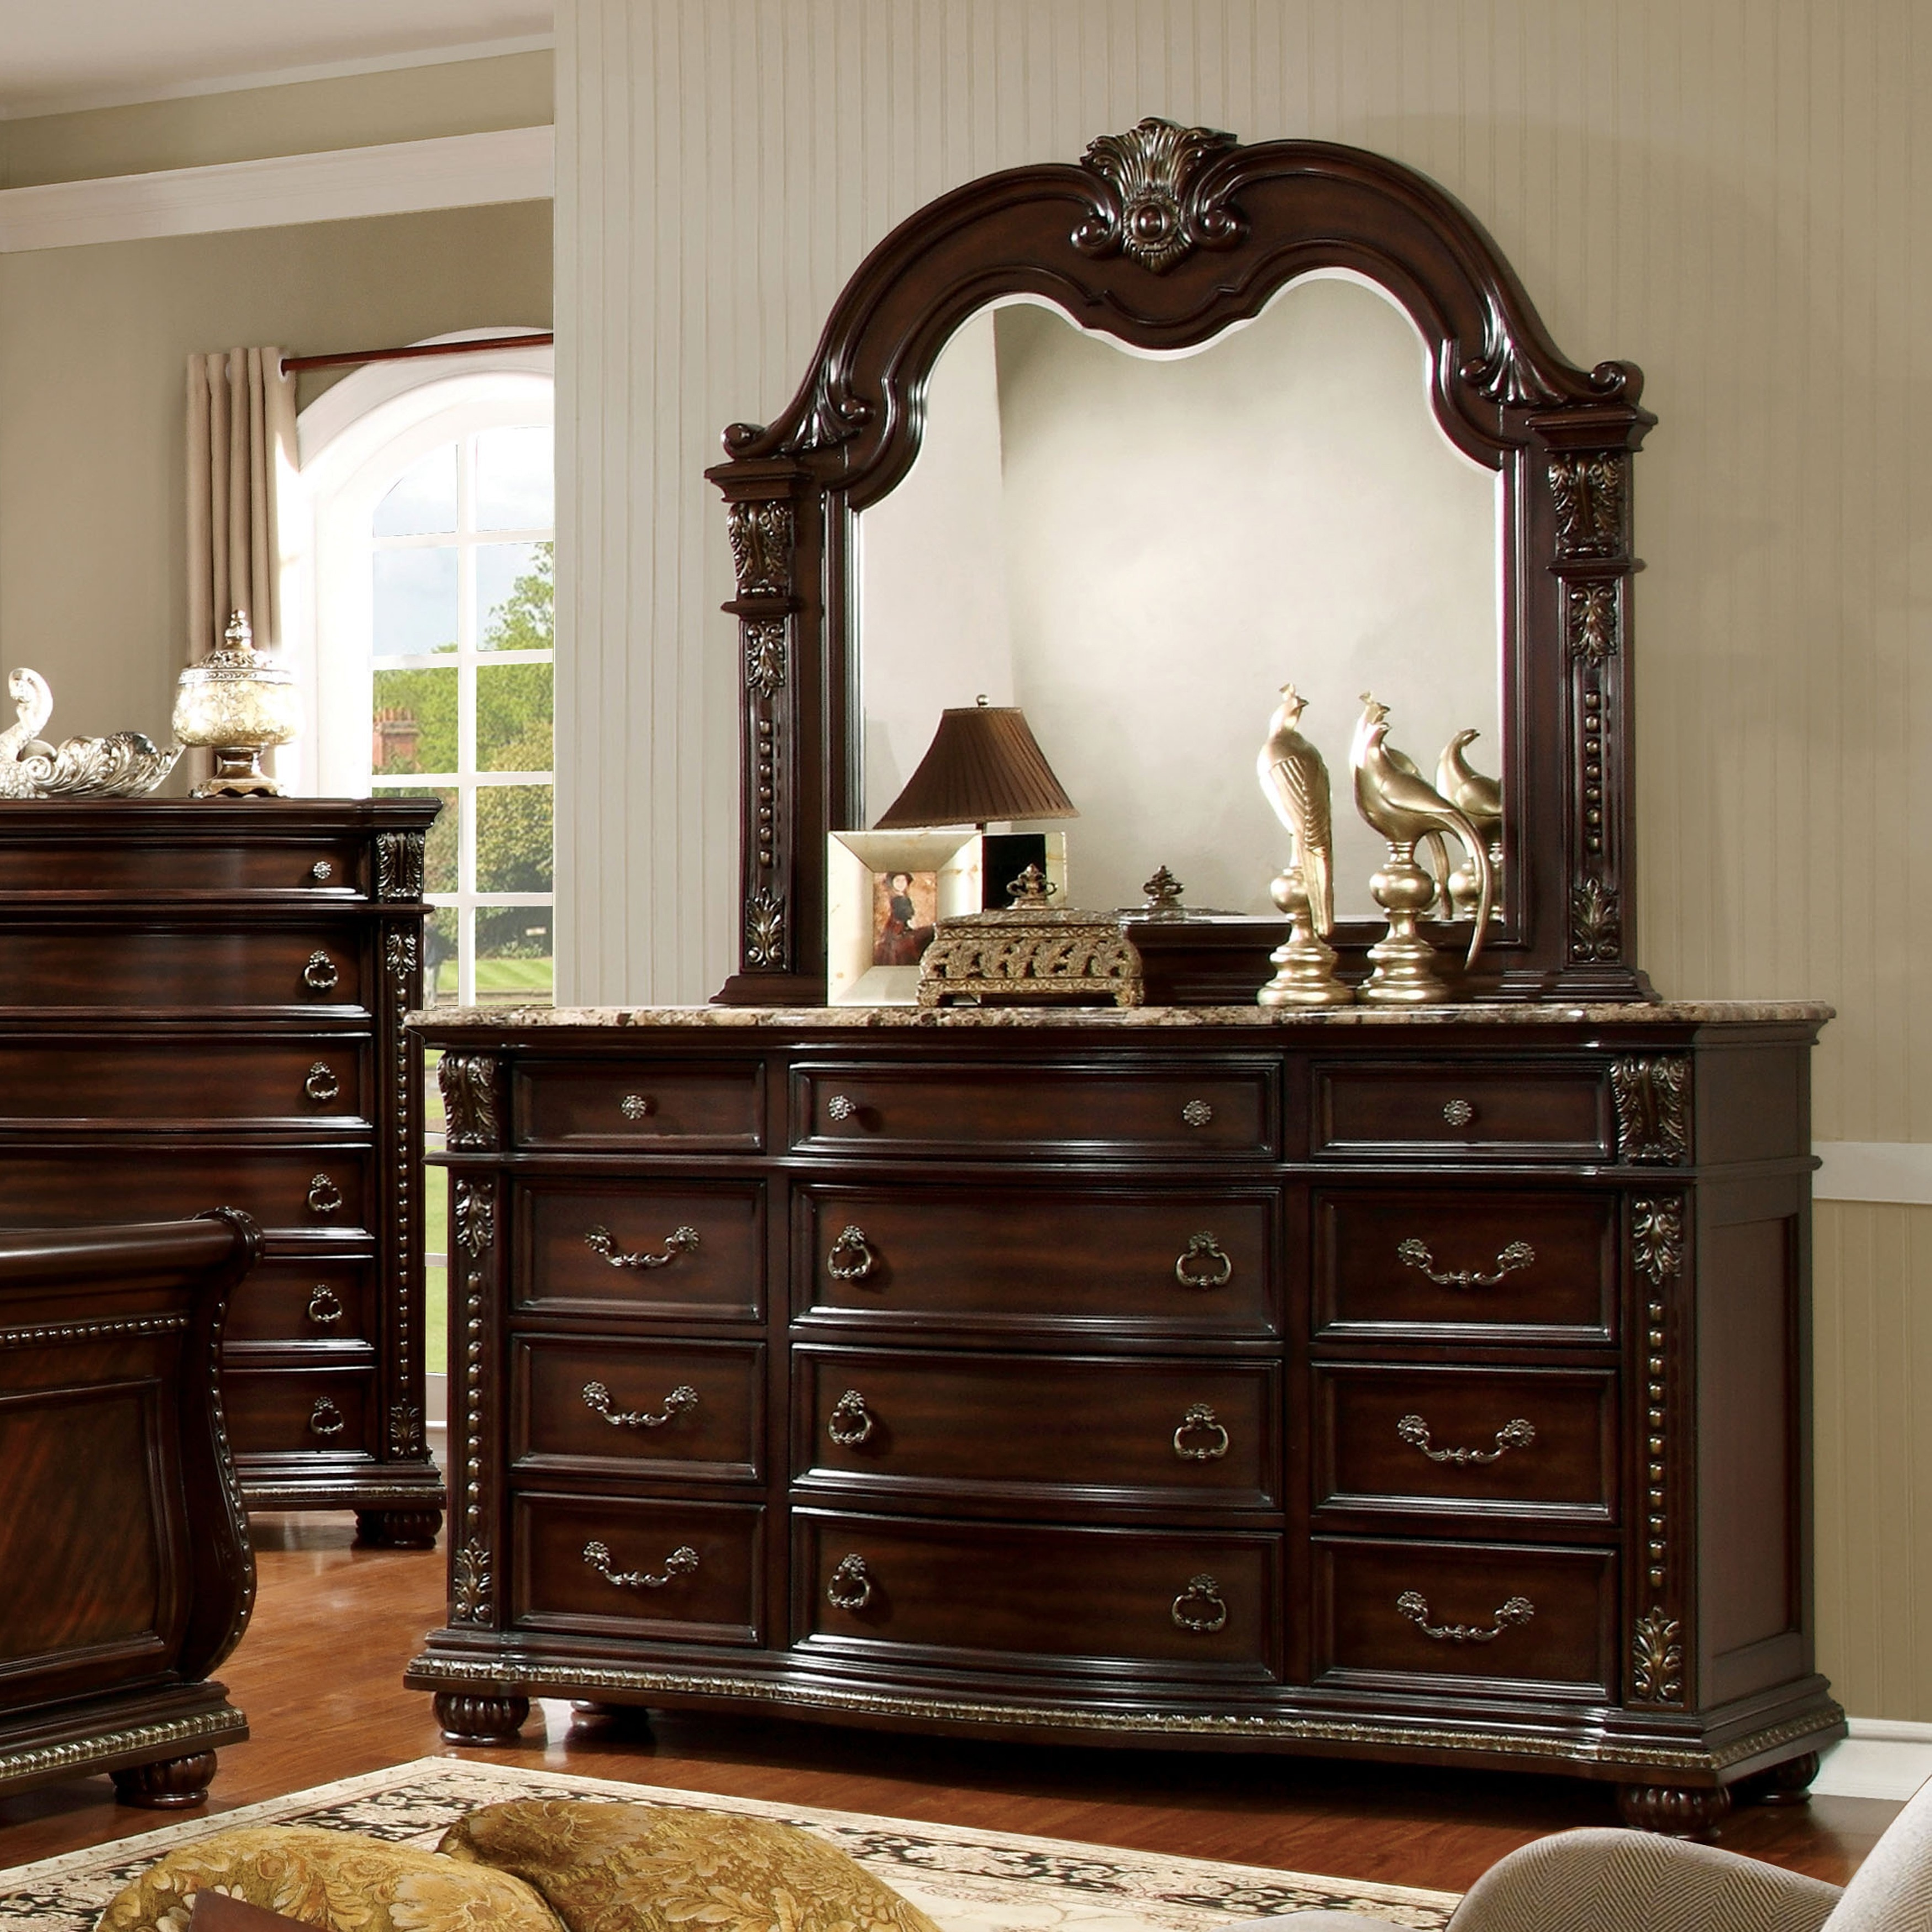 Furniture of America  Goodwell Traditional 2-piece Brown Cherry Marble Top Dresser and Mirror Set